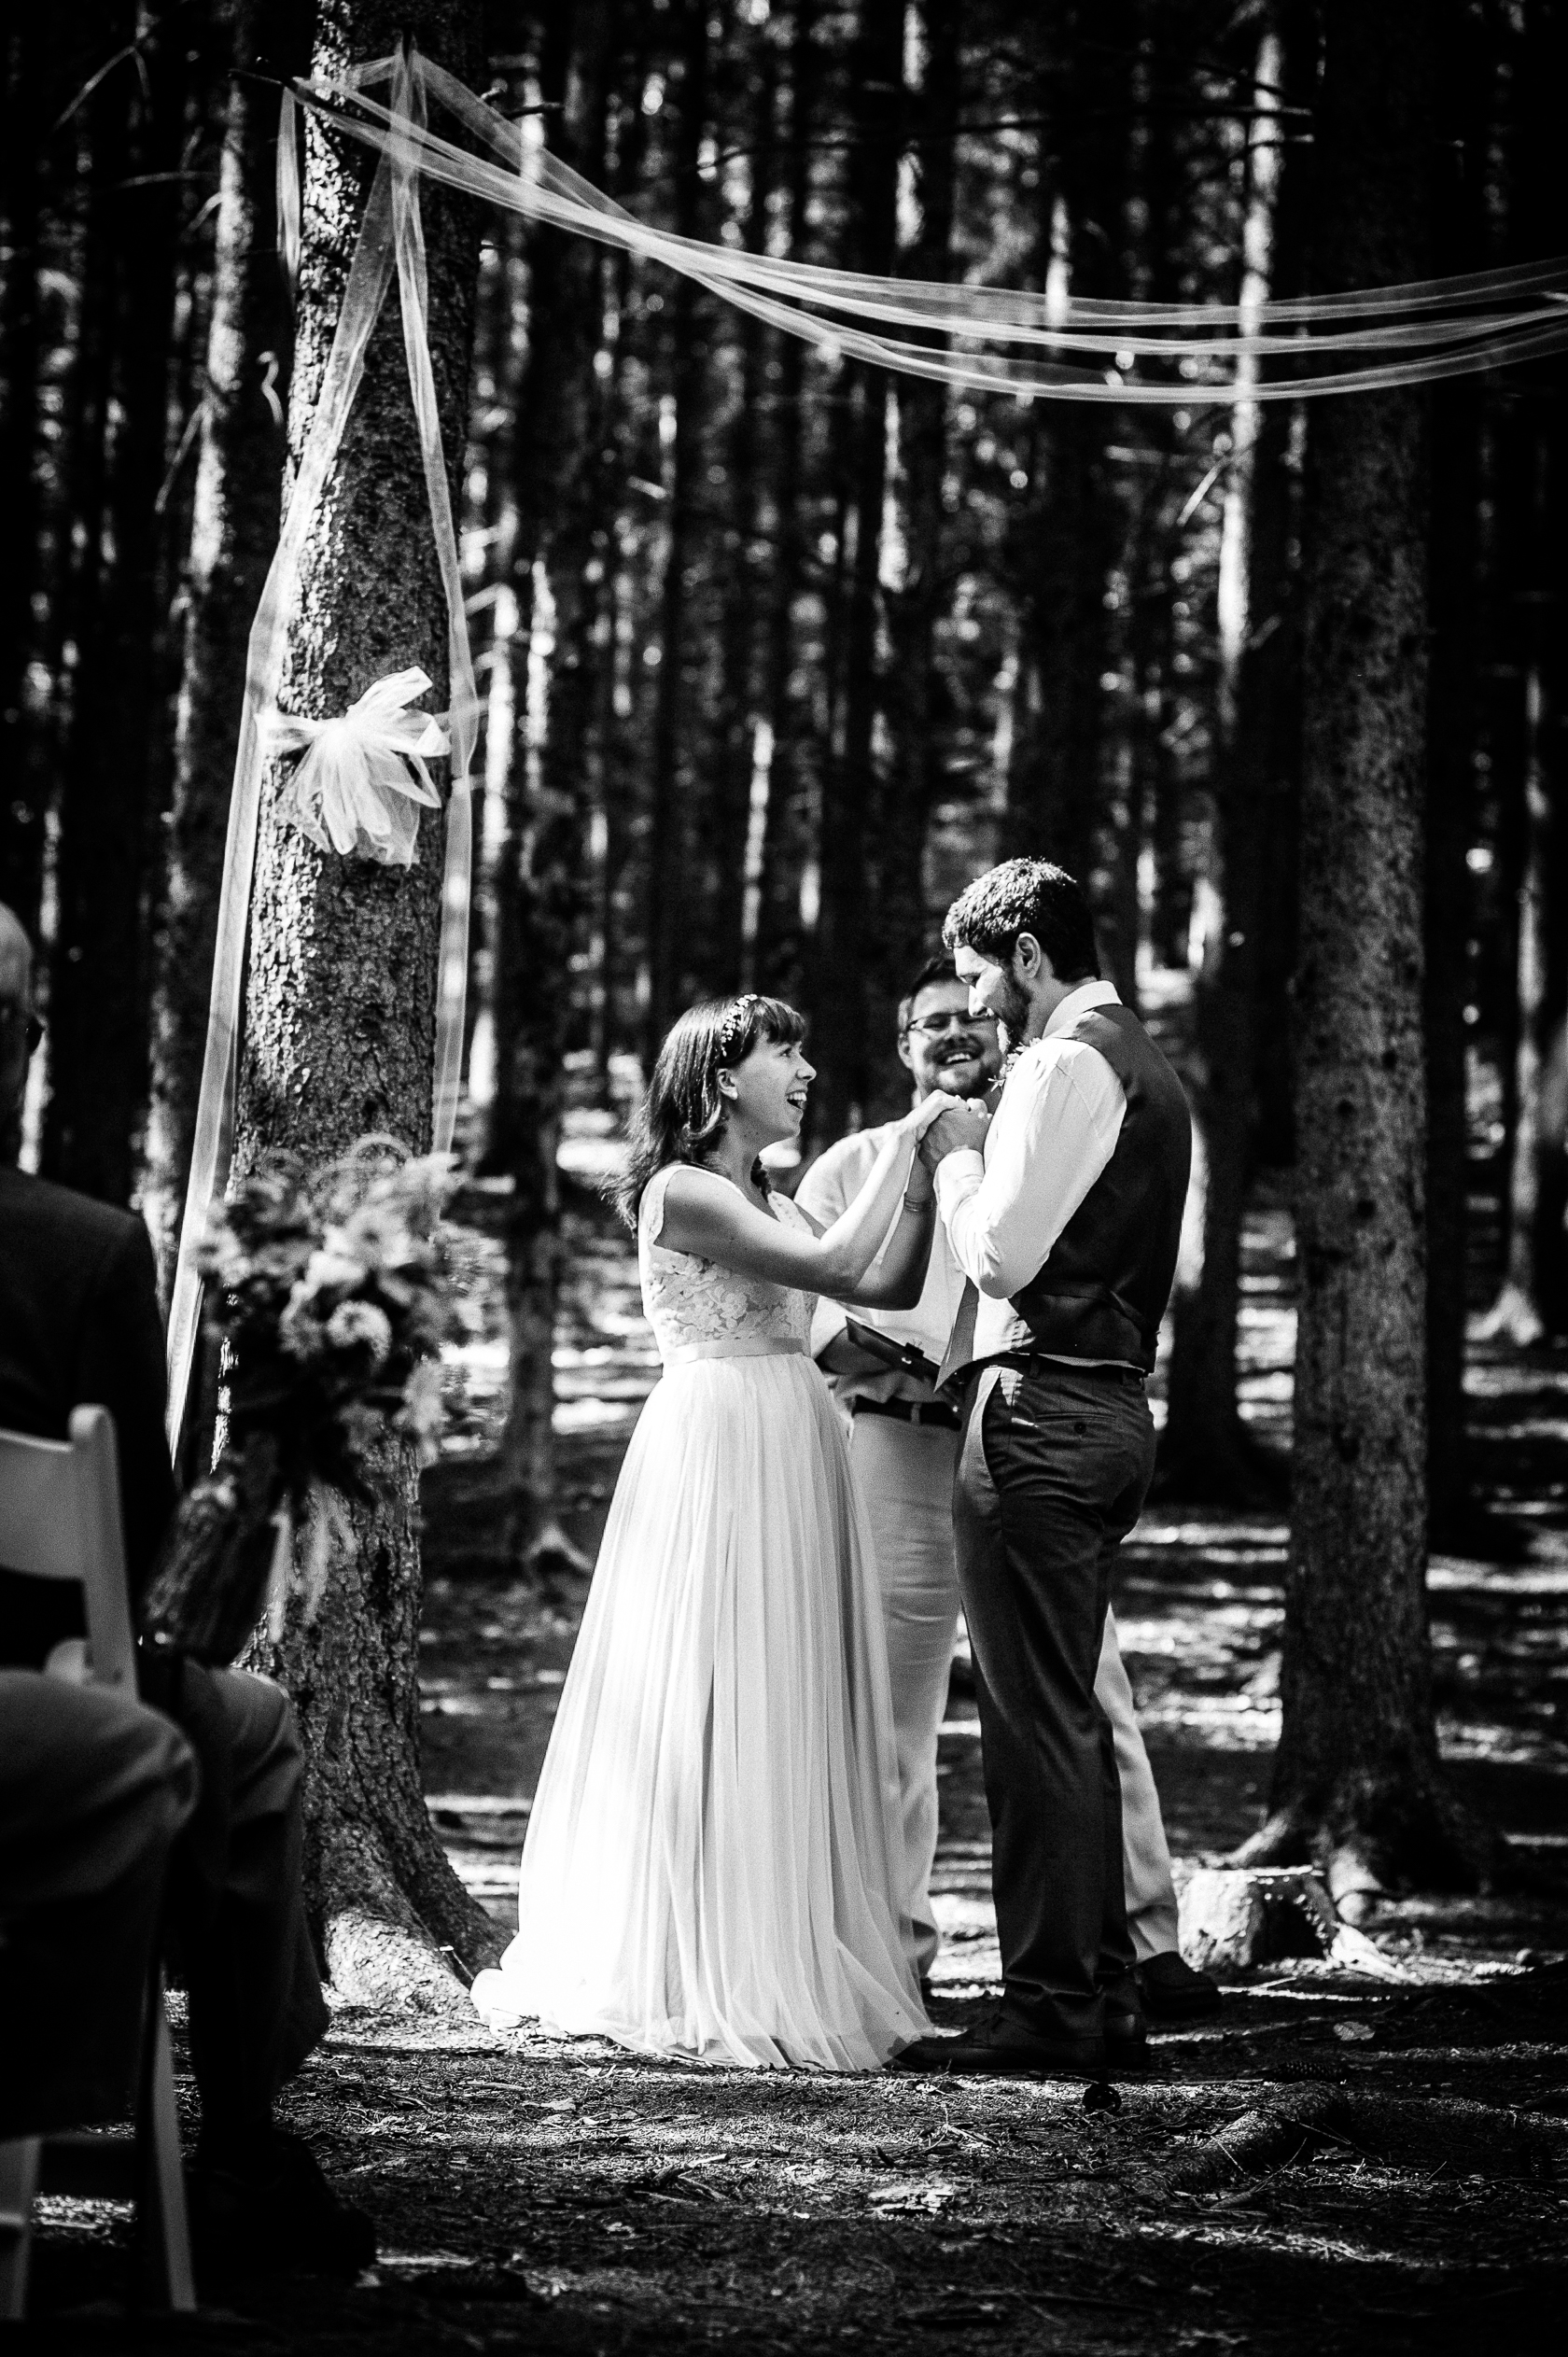 emotional photo of intimate ceremony in the woods